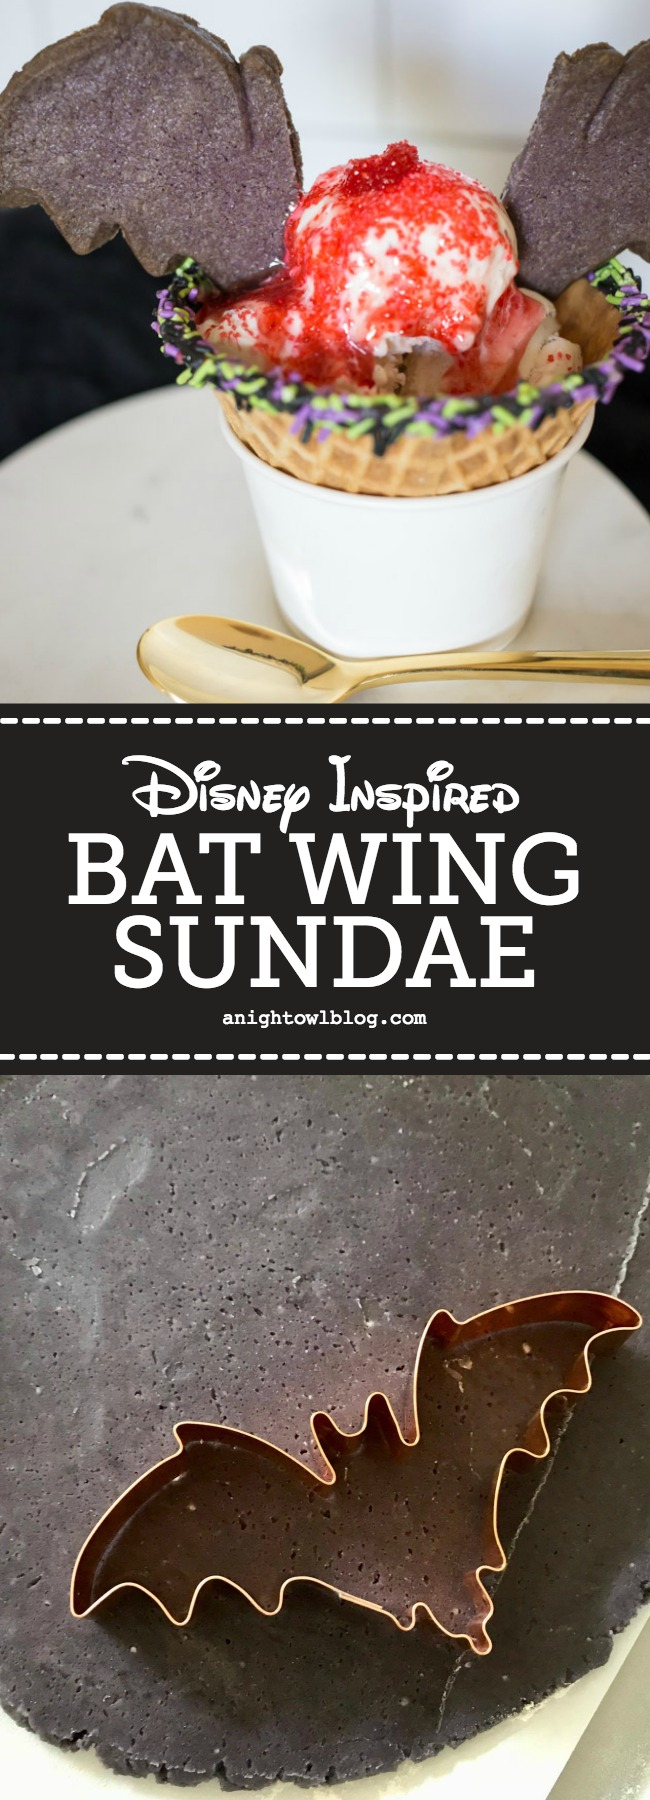 Can't make it to Disneyland for Halloweentime? Enjoy the next best thing, whip up a Disneyland Bat Wing Raspberry Sundae to enjoy from the comfort of home!